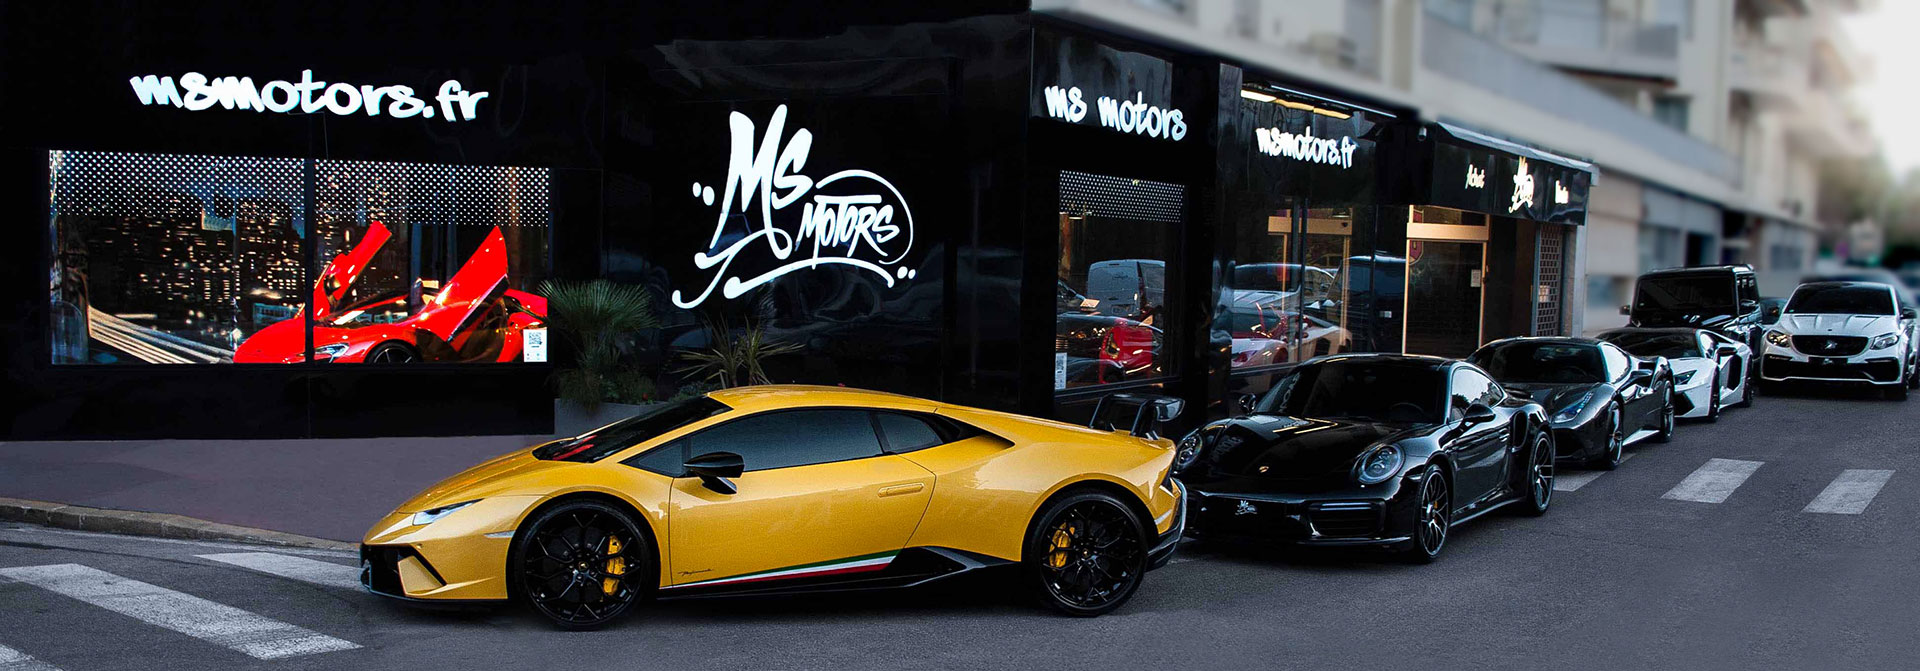 Garage Auto Paris Ms Motors Voiture Occasion Cannes Vente Auto Cannes